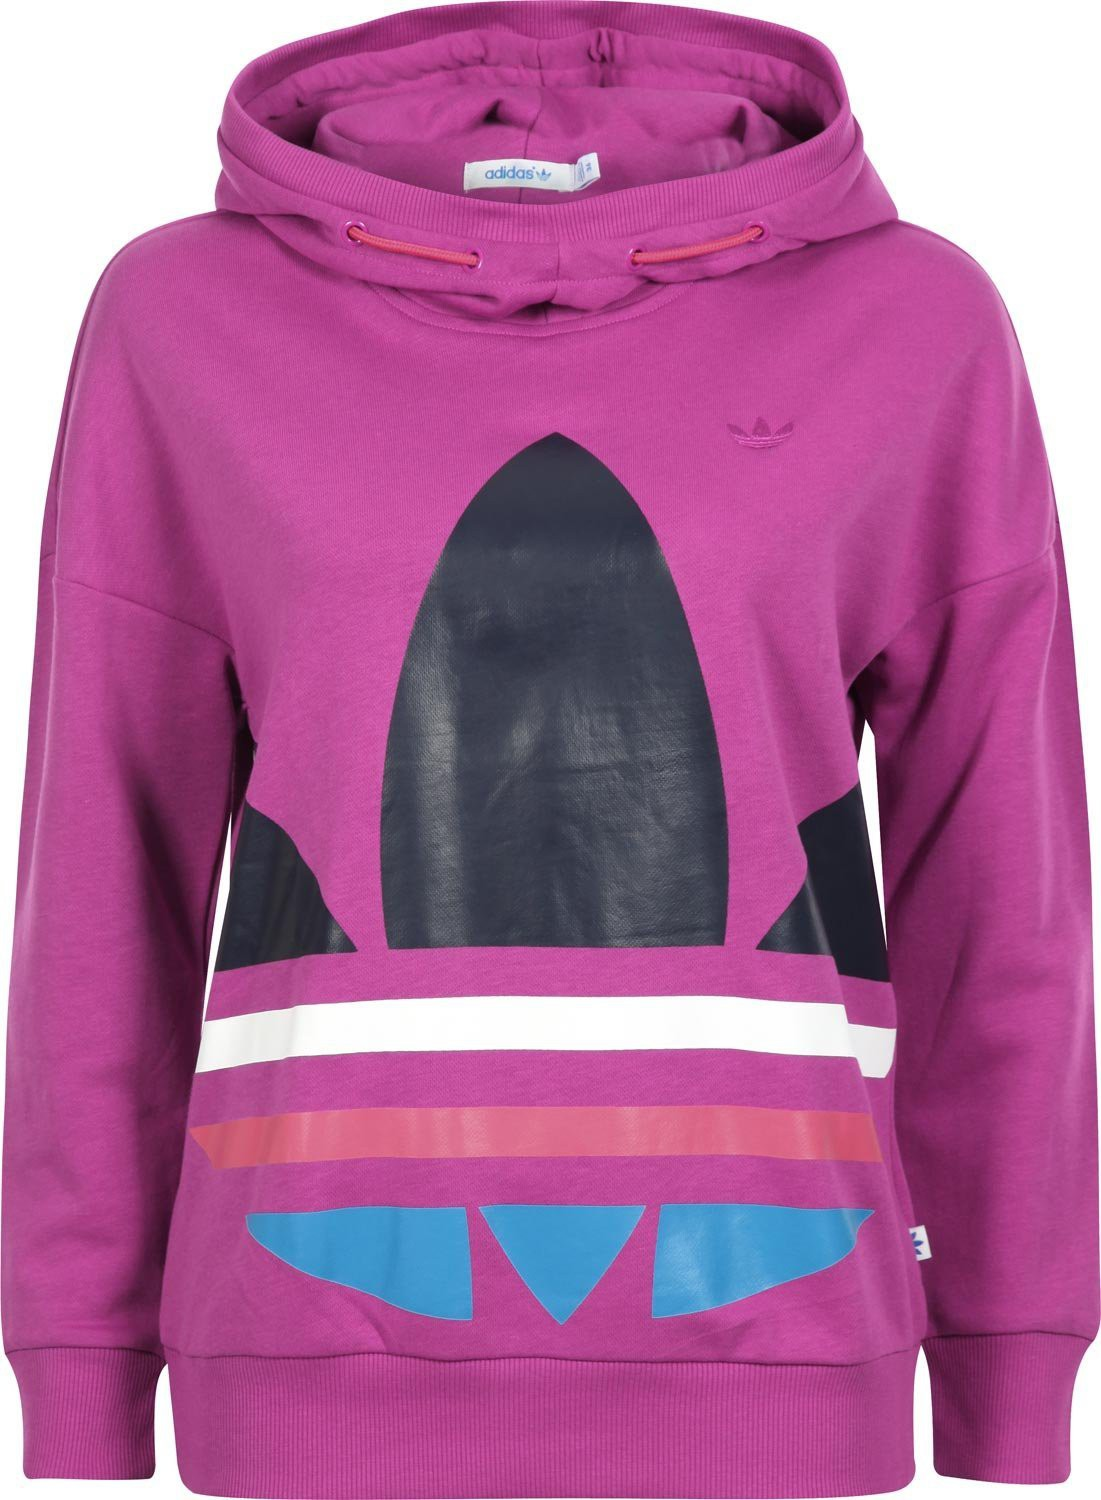 adidas originals big trefoil oversize hoodie hoodie sweatshirt fuchsia purple 38 ebay. Black Bedroom Furniture Sets. Home Design Ideas